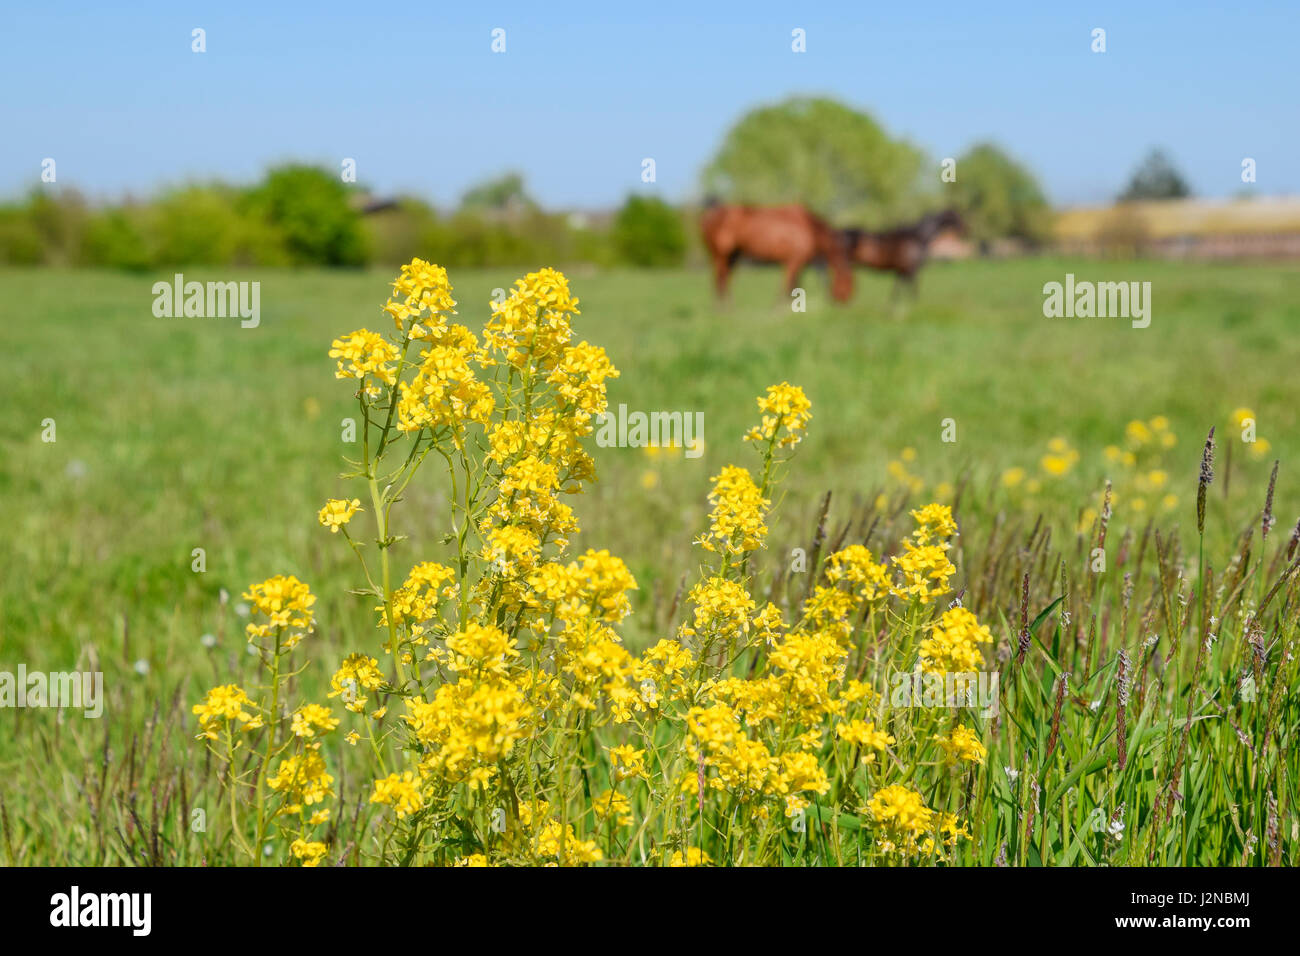 Horses On The Grass In The Pasture Yellow Flowers On A Horse Stock